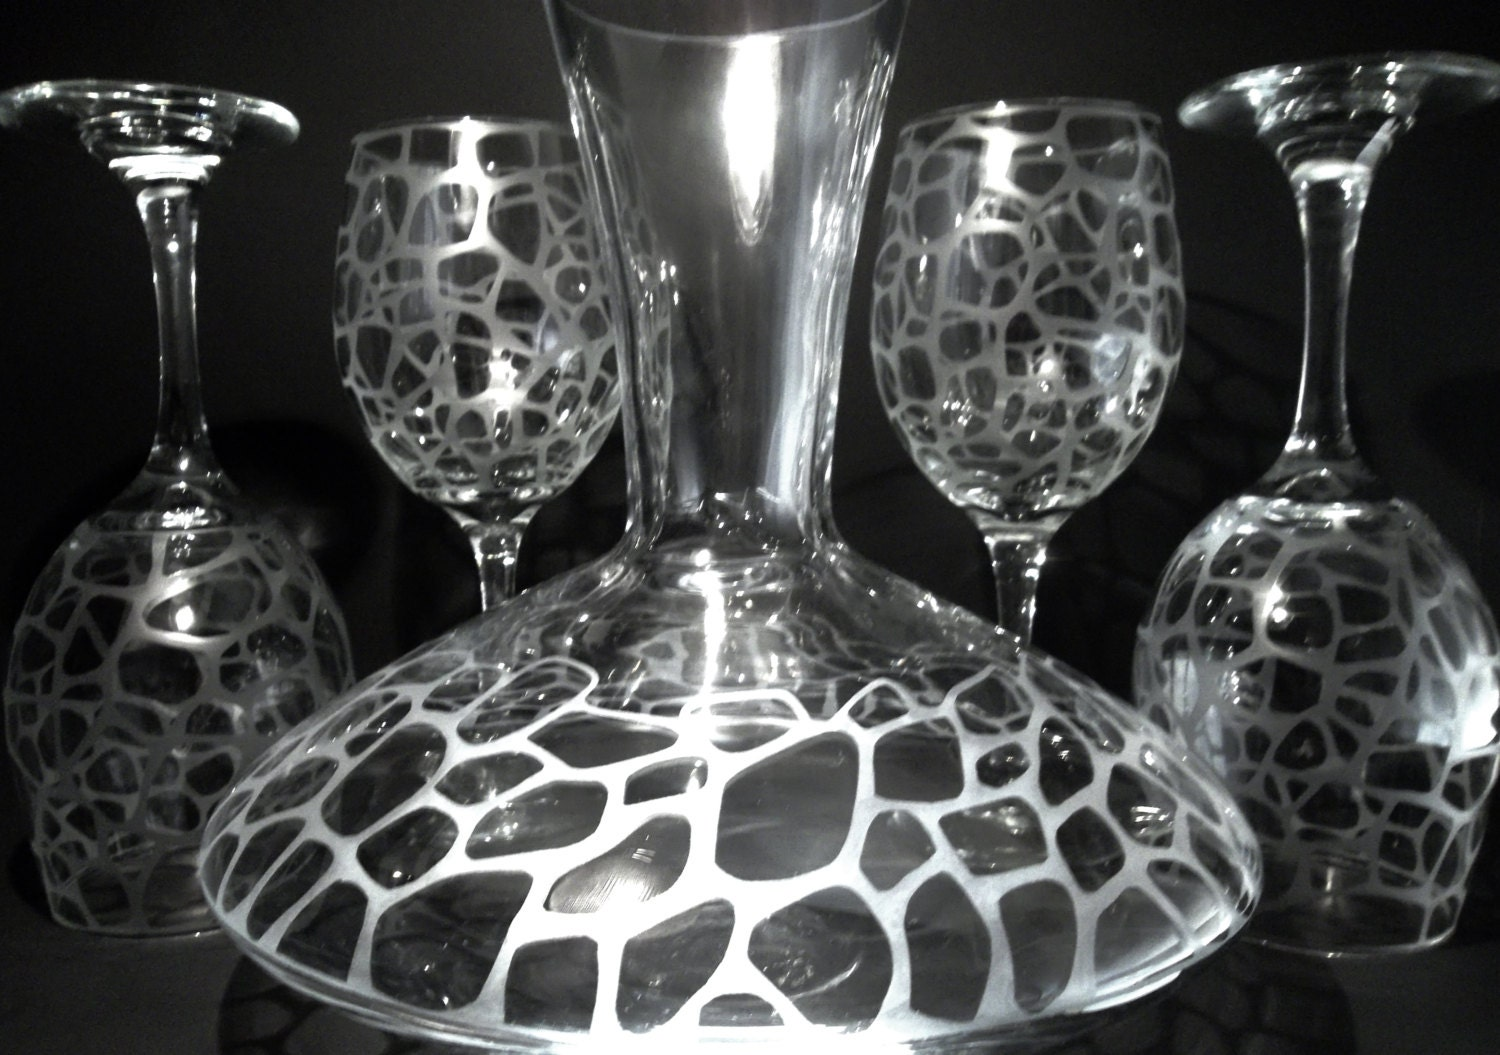 wine decanter and wine glass set etched with giraffe print. Black Bedroom Furniture Sets. Home Design Ideas